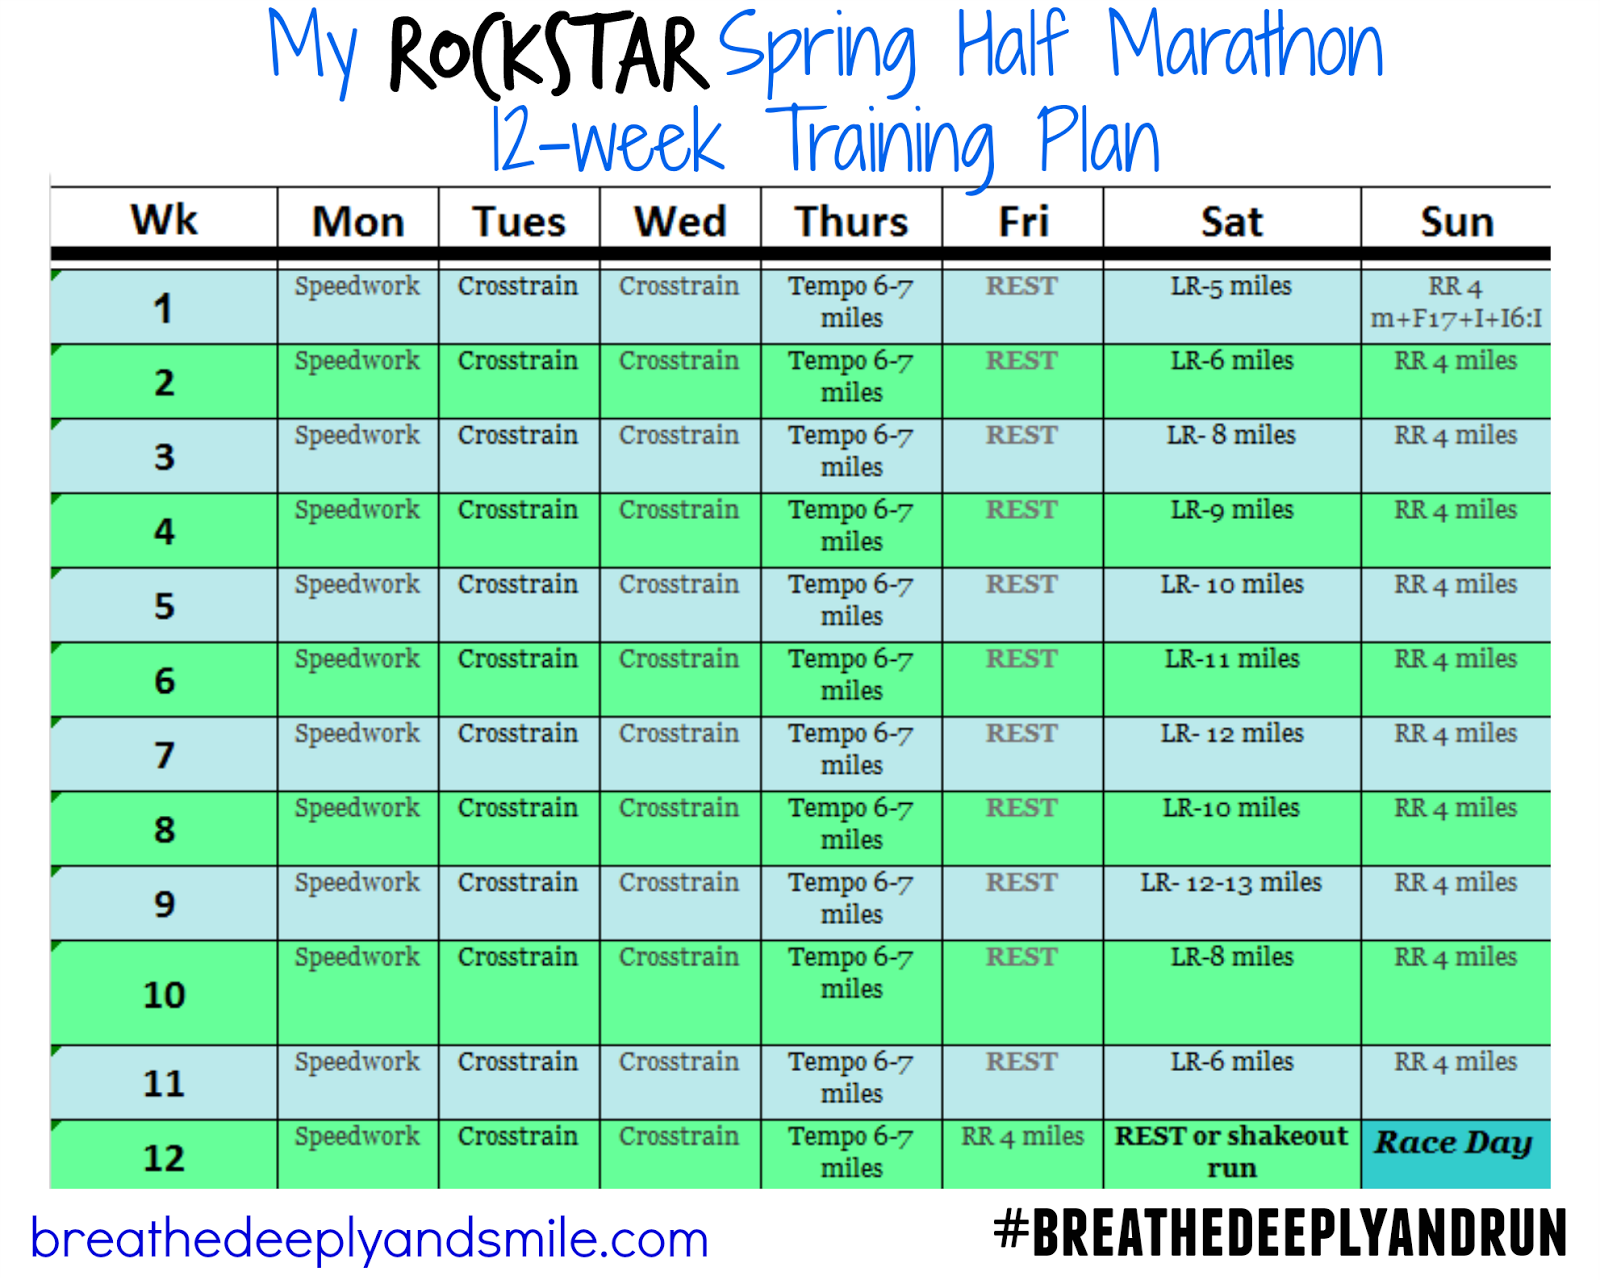 rockstar-spring-half-marathon-12-week-training-plan